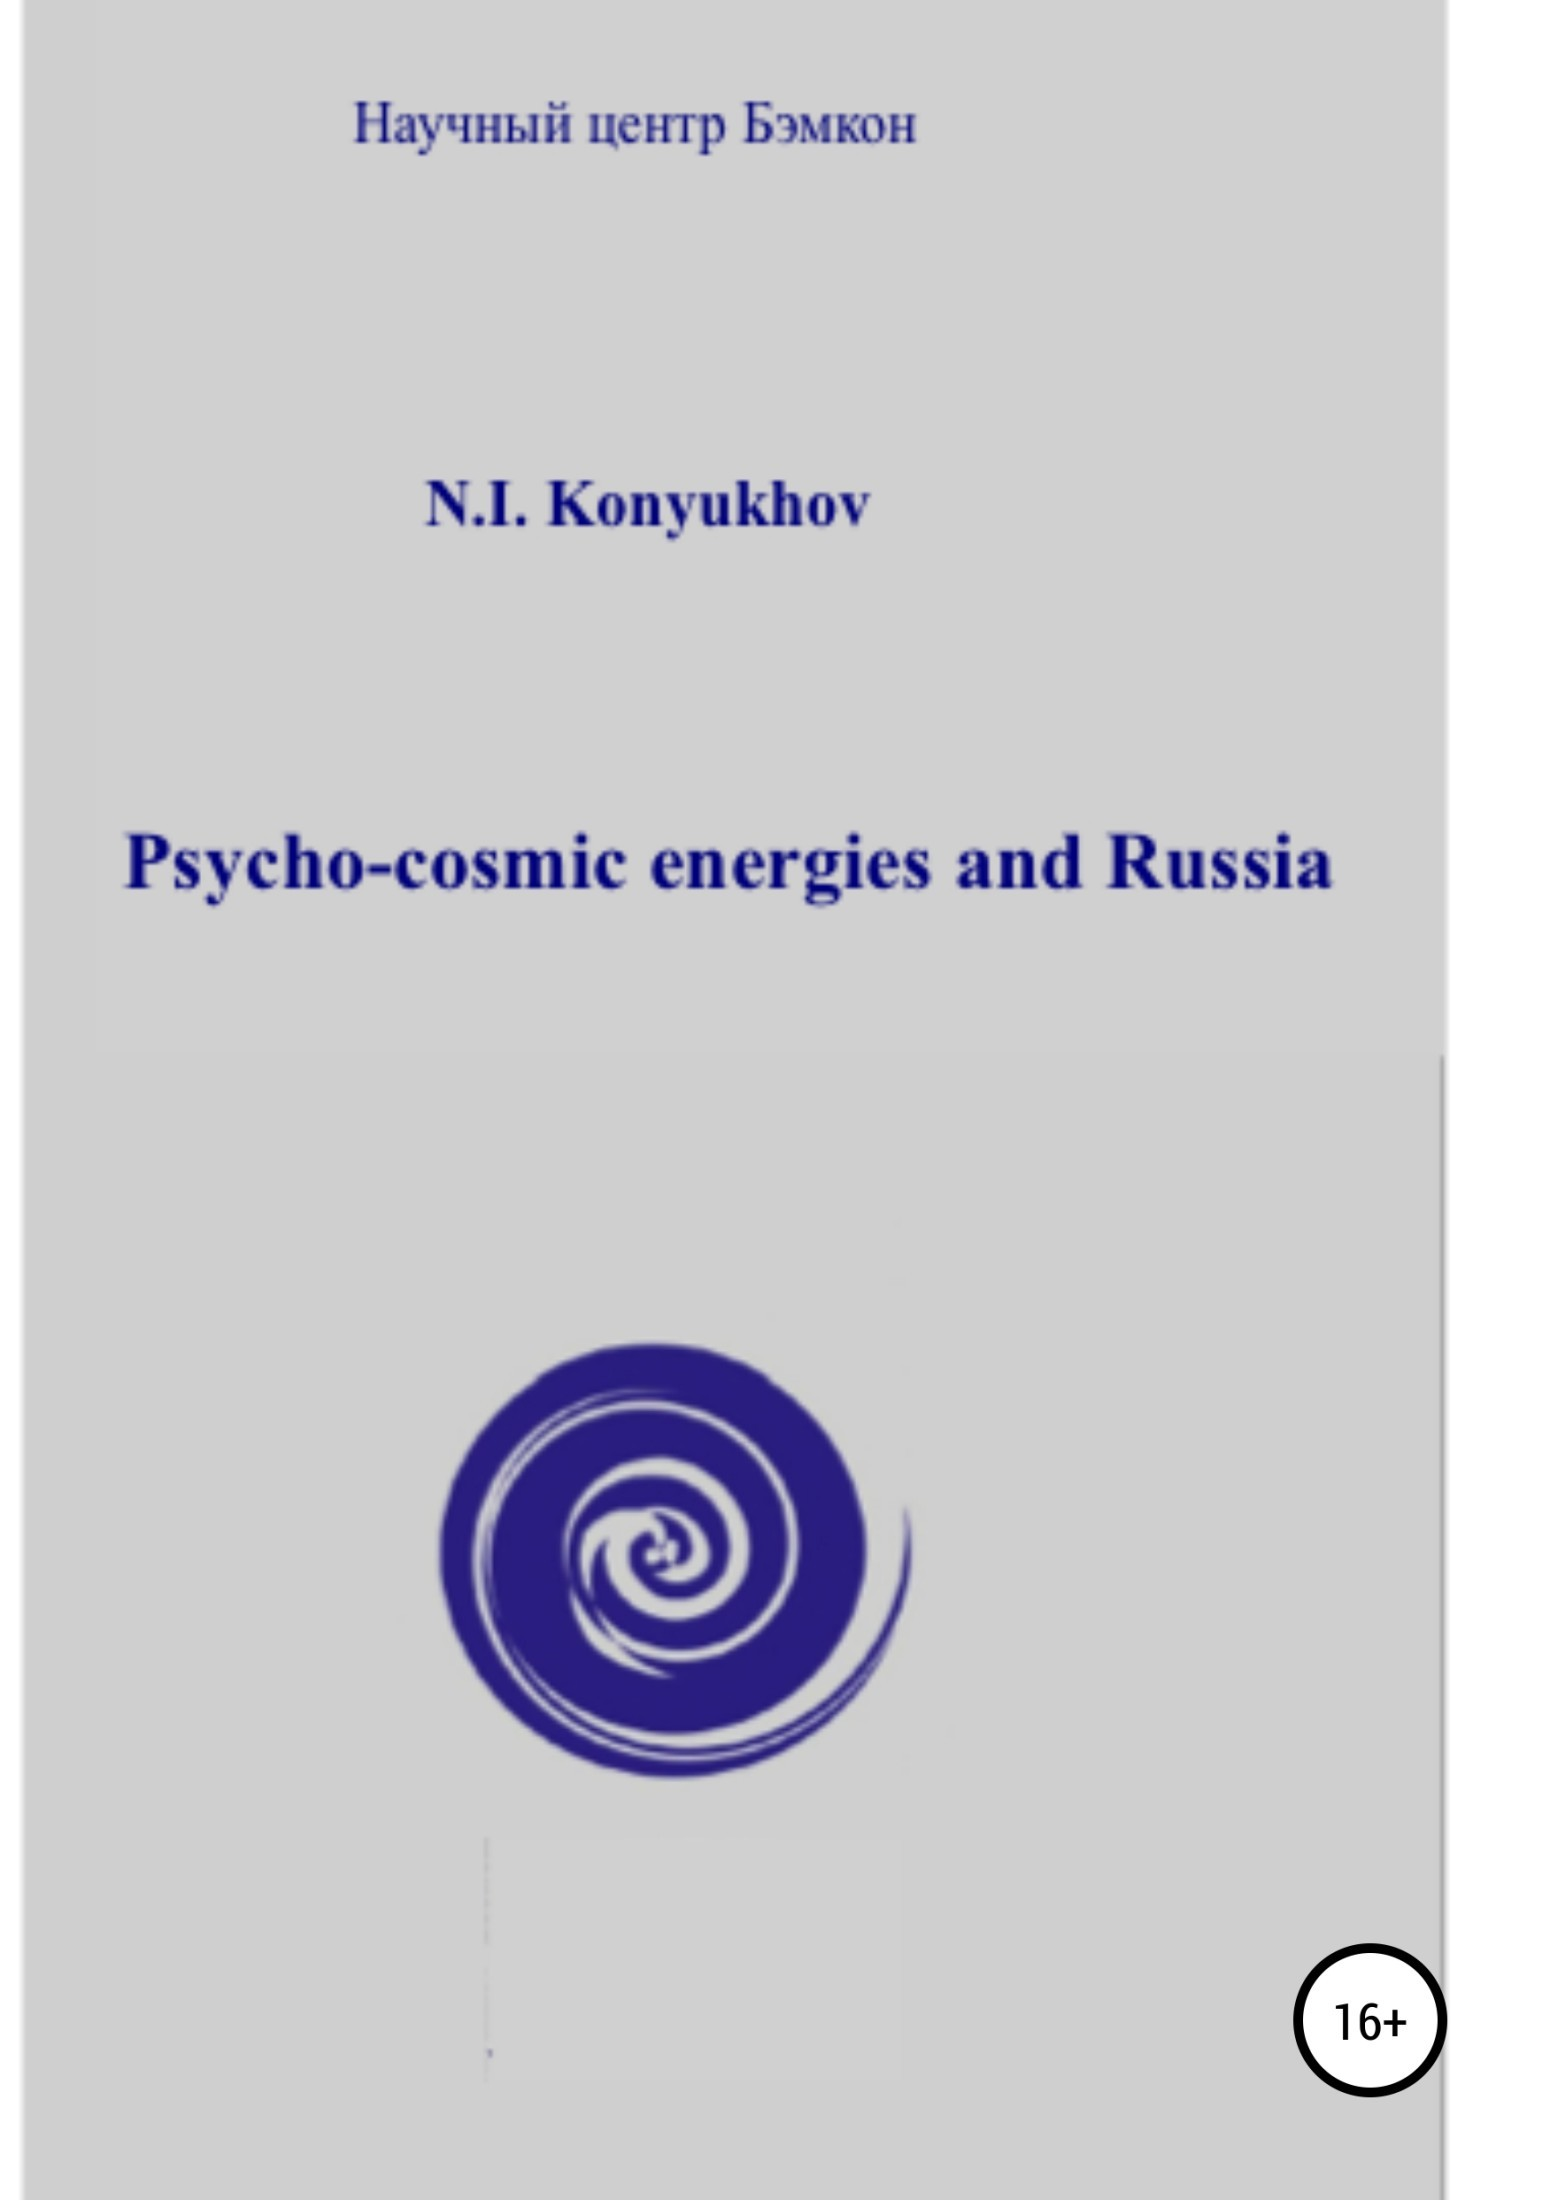 Николай Игнатьевич Конюхов Psycho-cosmic energies and Russia трехколесный самокат cosmic zoo galaxy one космик зоо гэлакси 1 cosmic zoo